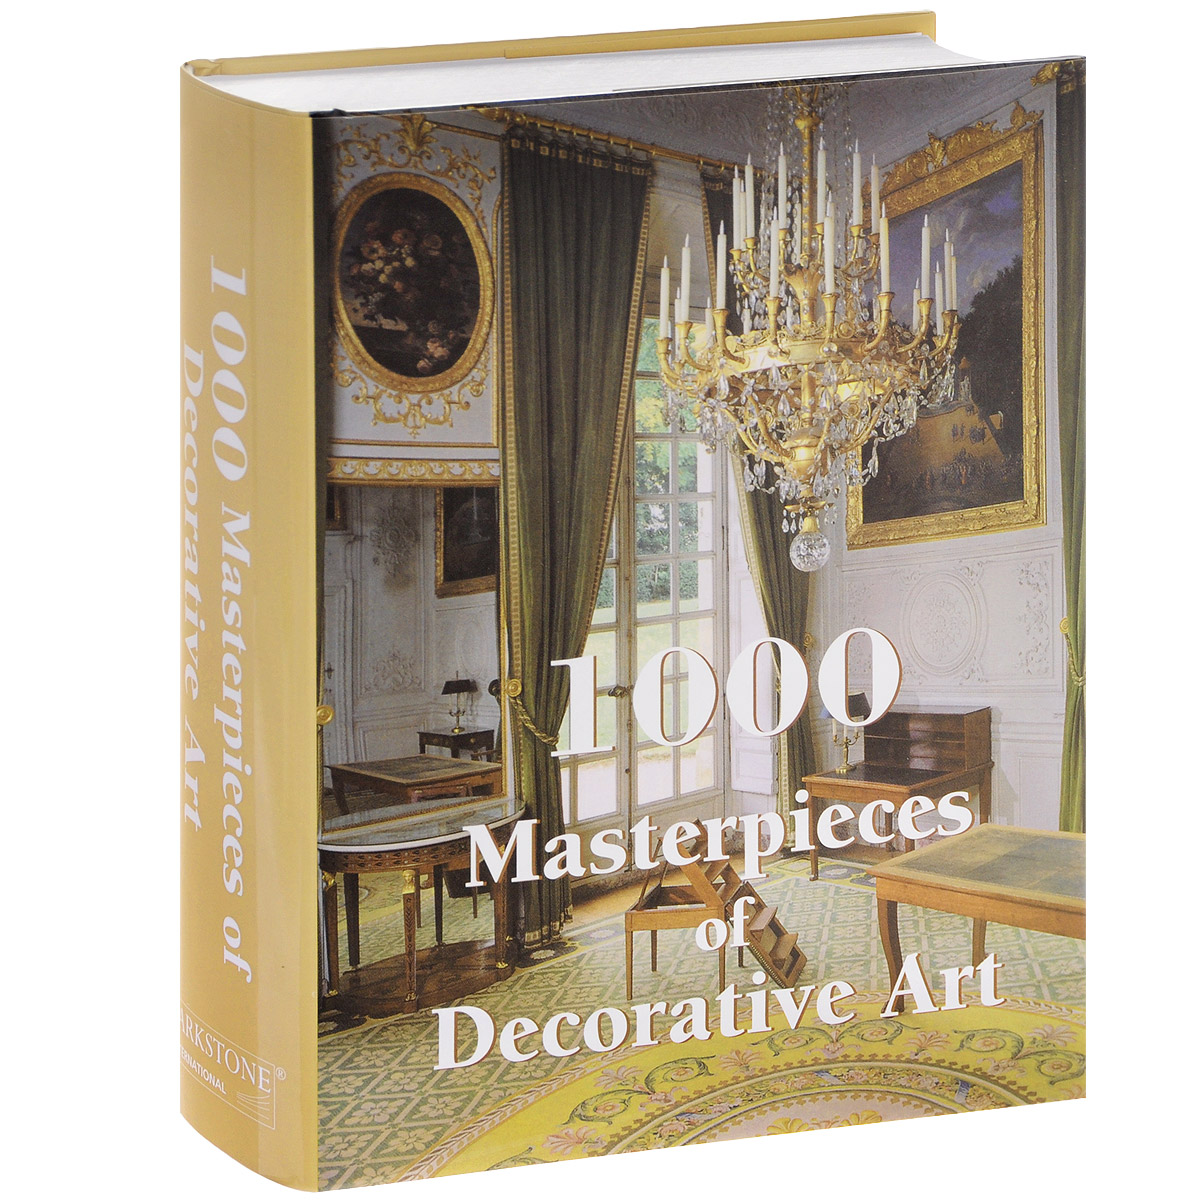 1000 Masterpieces of Decorative Art the art treasures from mosсow museums